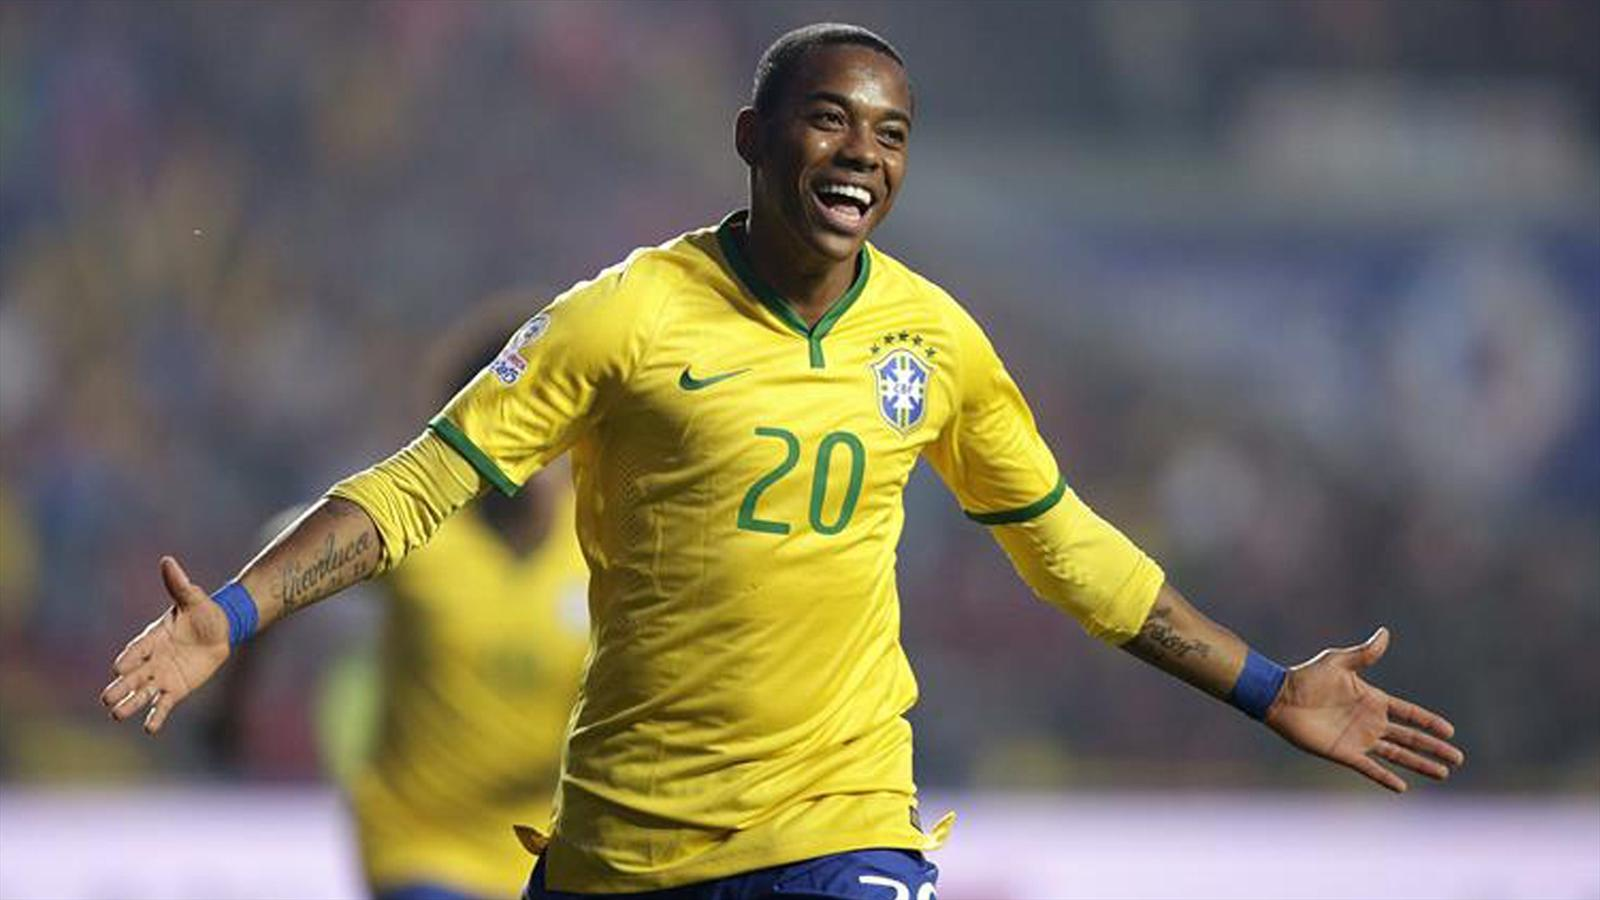 Brazil's Robinho celebrates after scoring against Paraguay during their Copa America